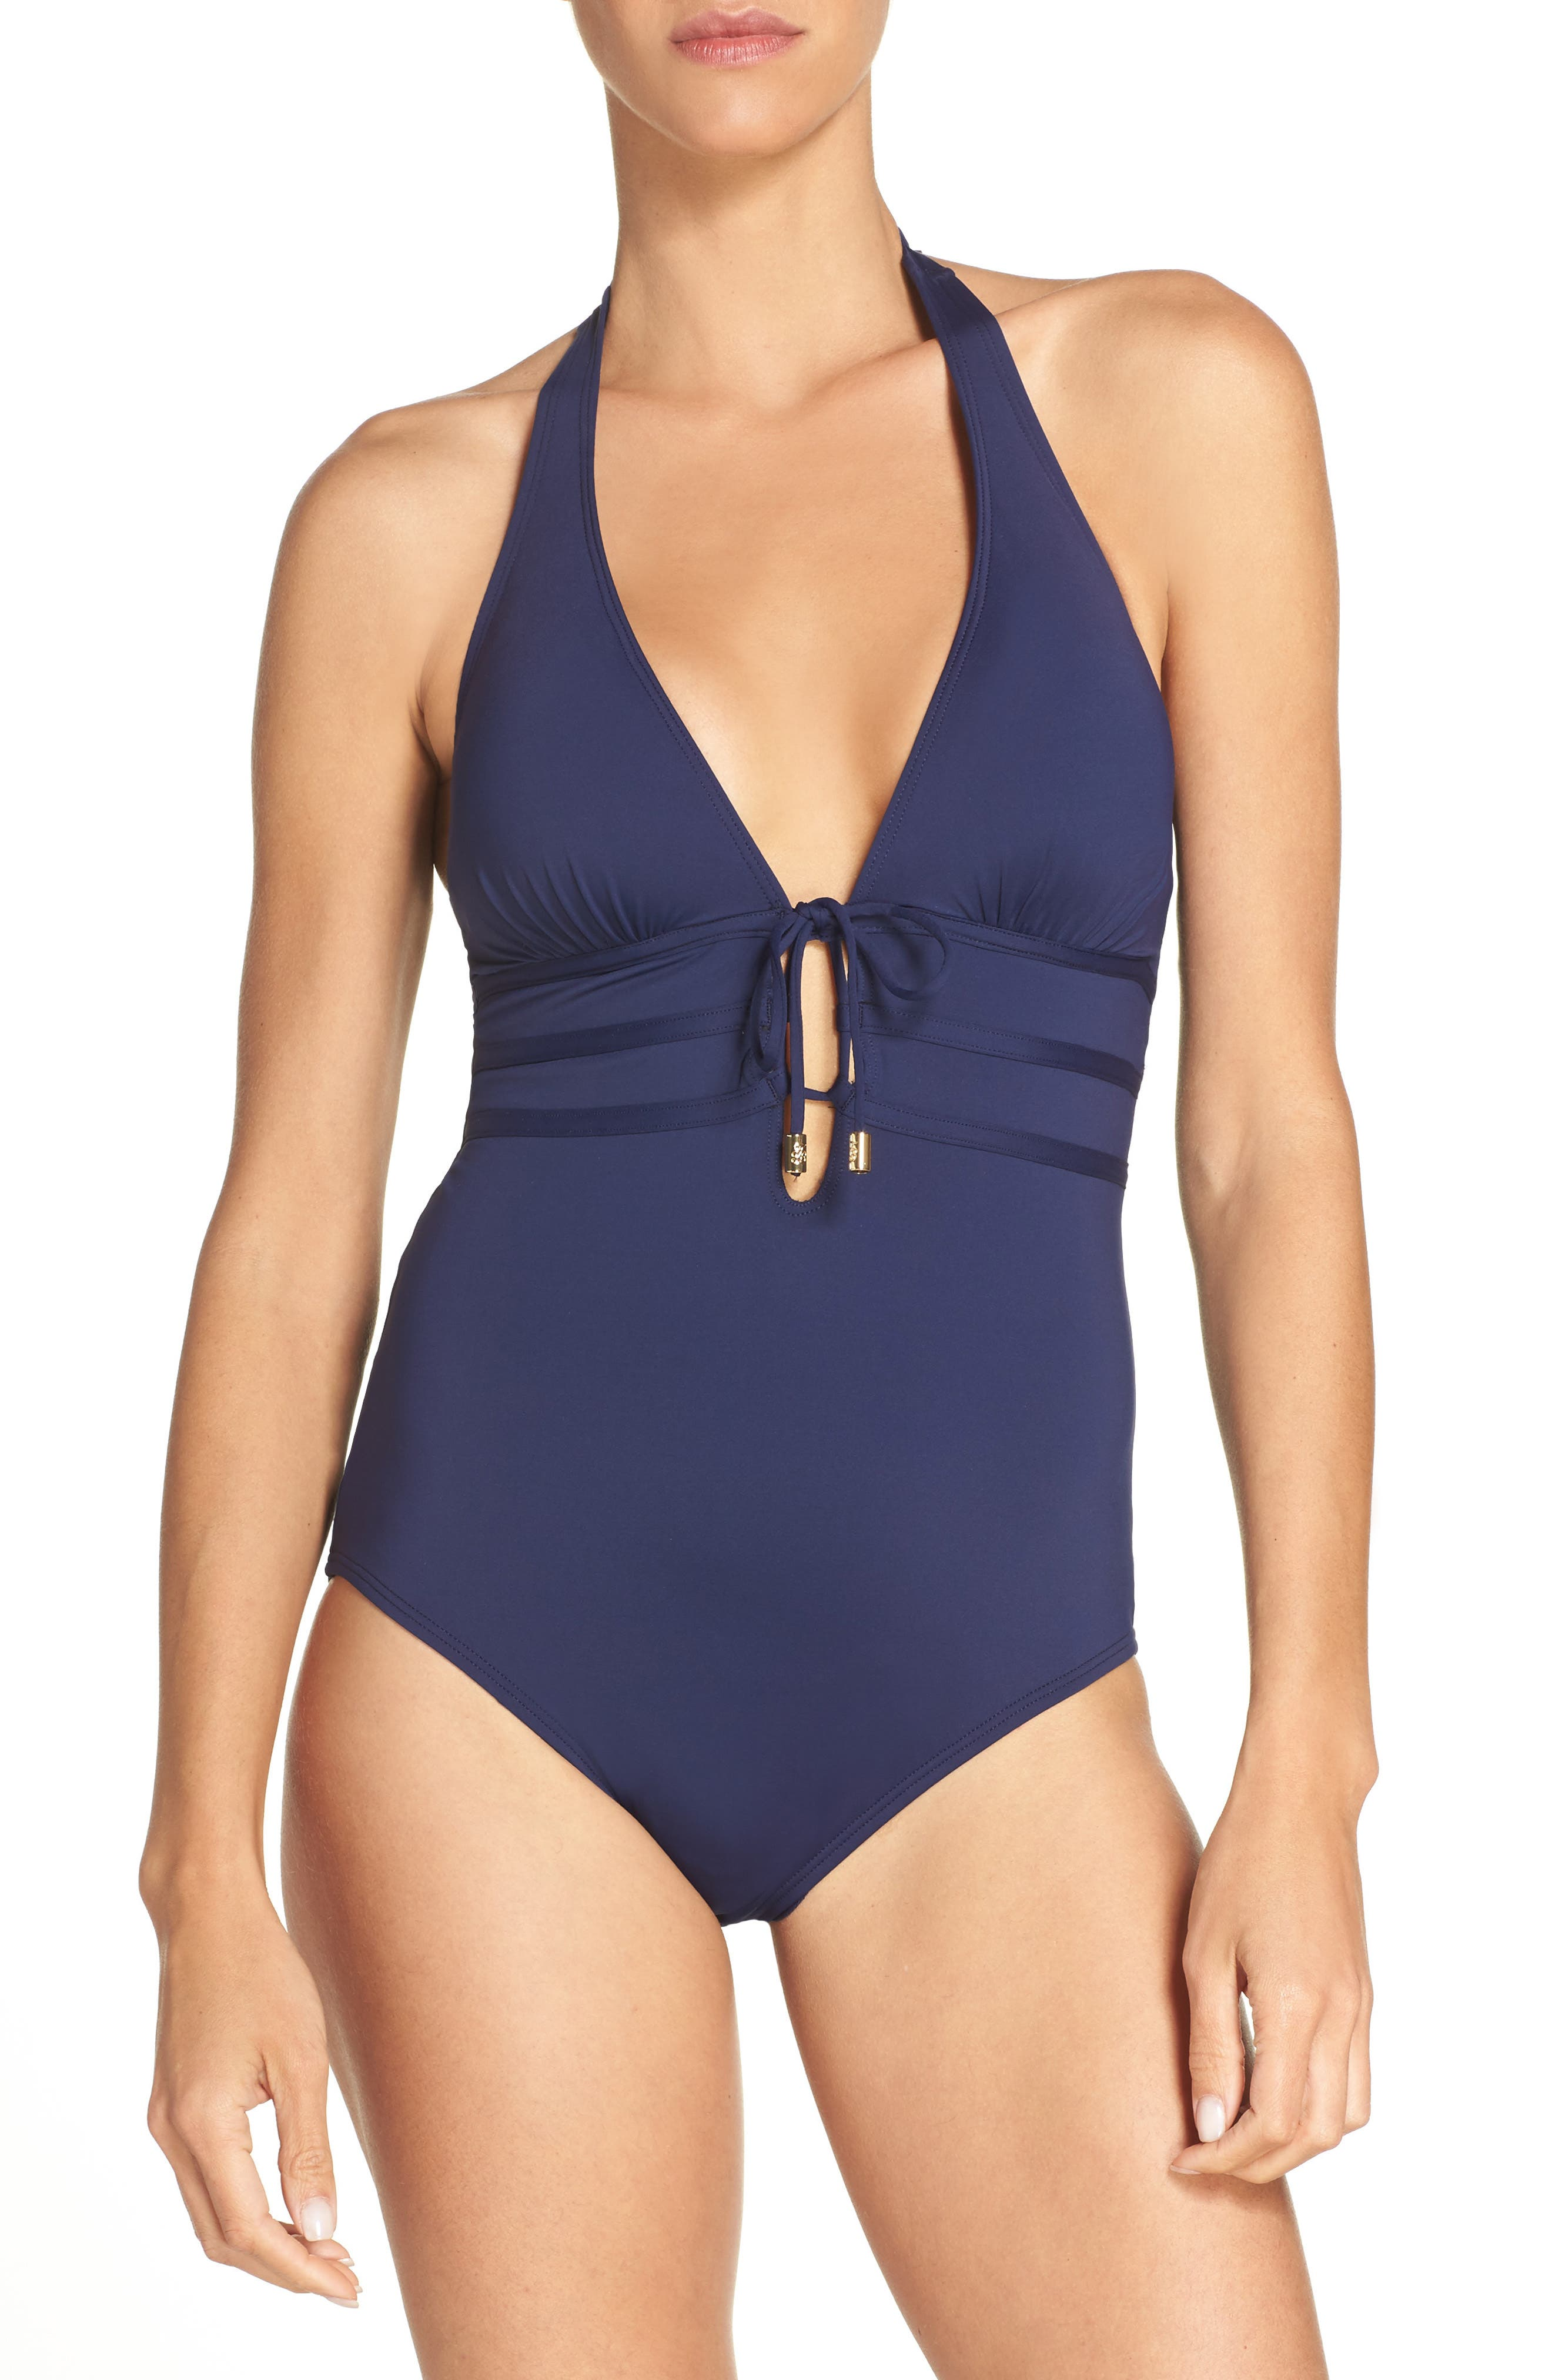 Pearl One-Piece Swimsuit,                         Main,                         color, Mare Navy